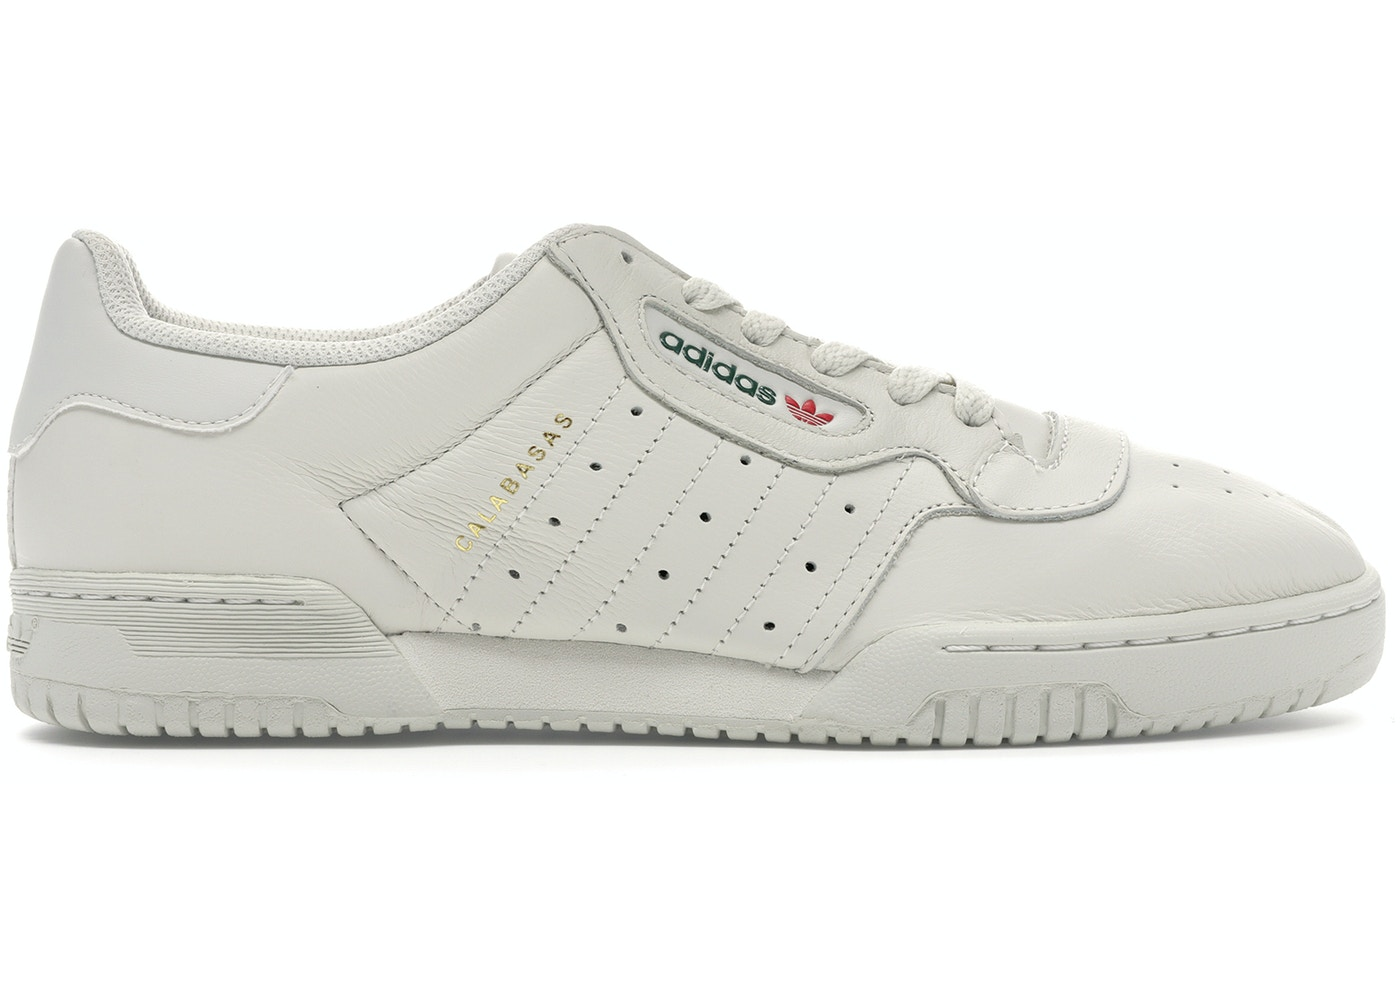 83ae93f82 Buy adidas Yeezy Powerphase Shoes   Deadstock Sneakers